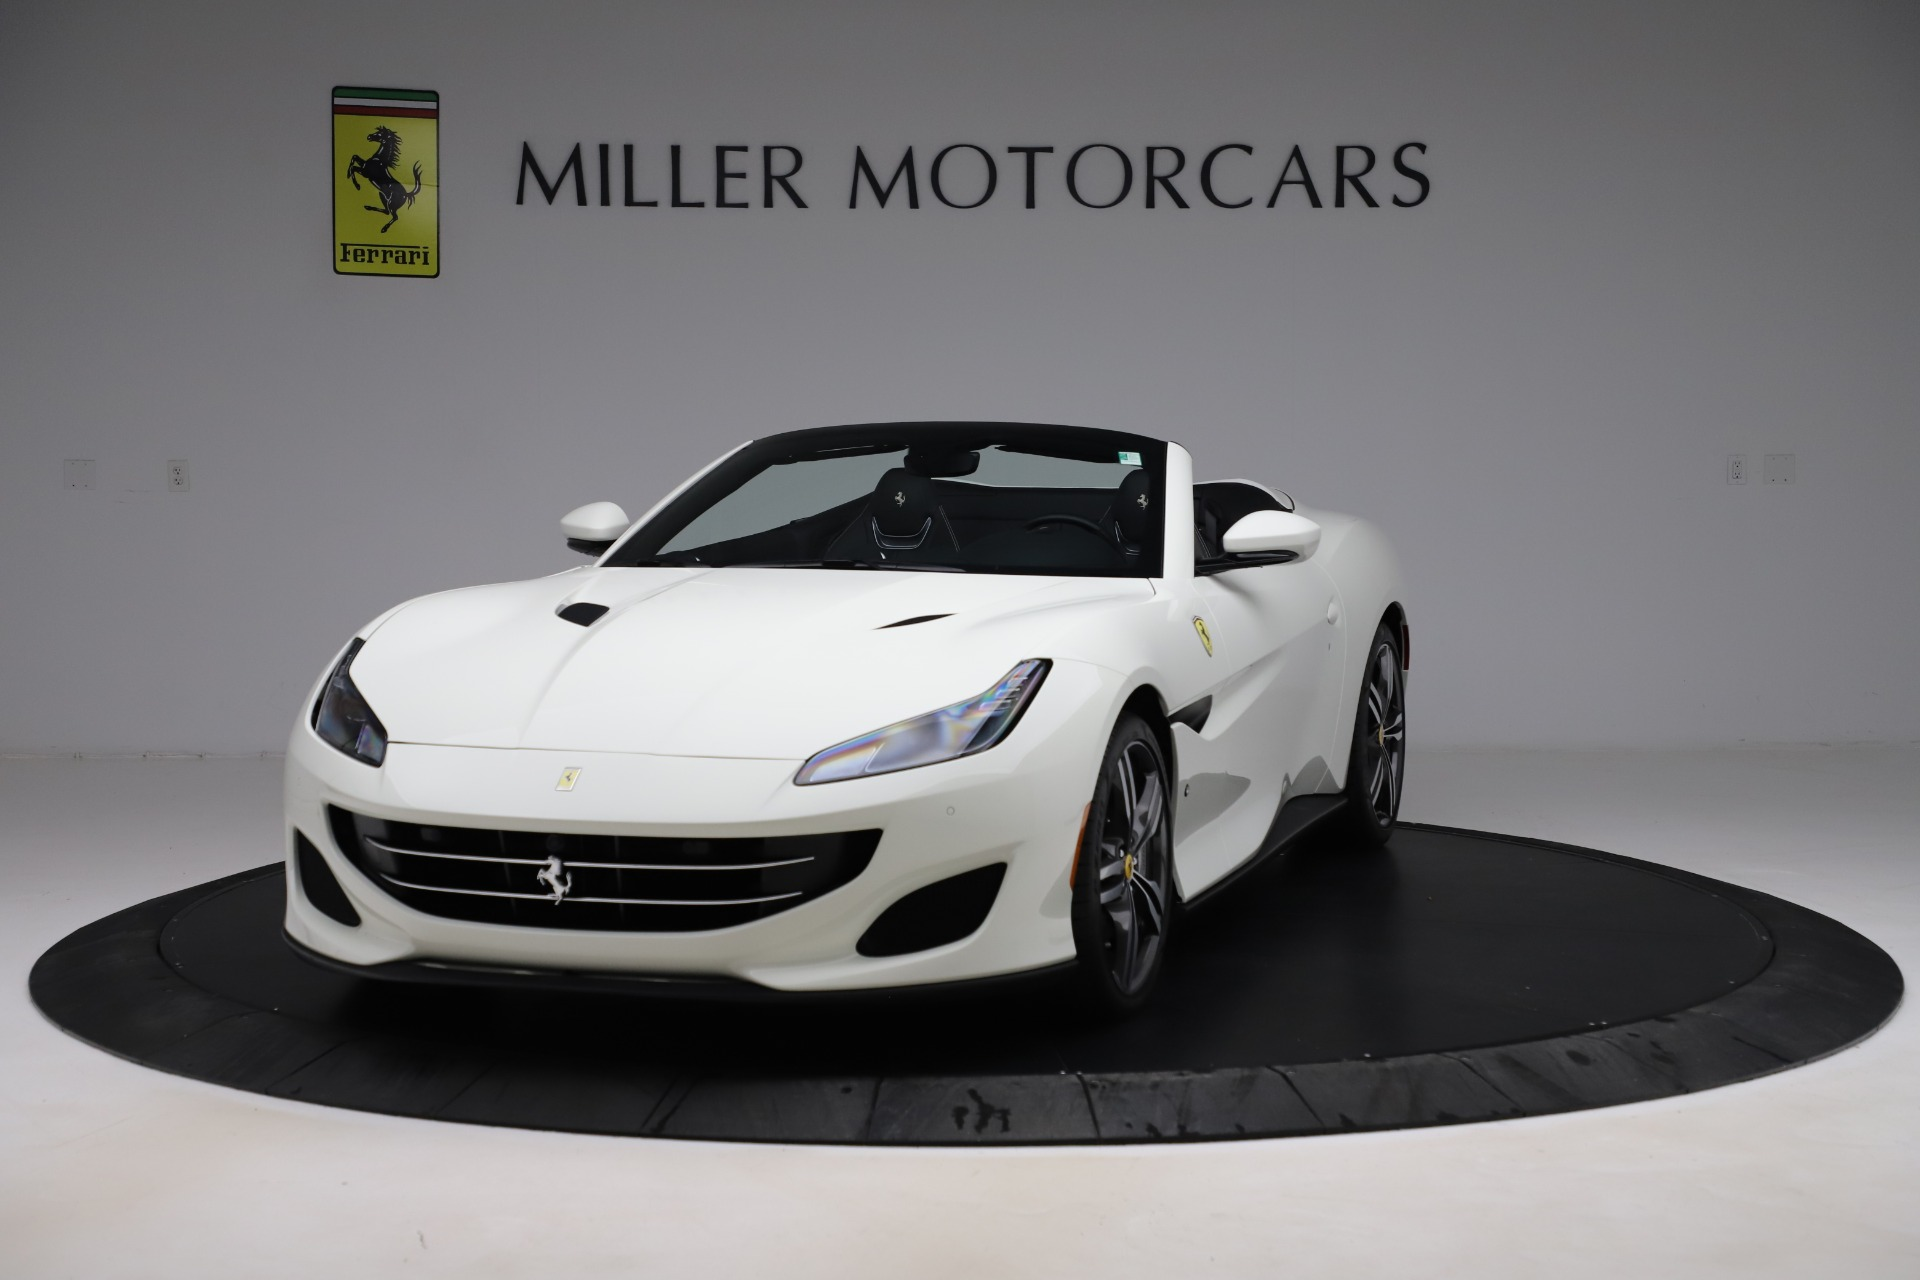 Used 2019 Ferrari Portofino for sale $231,900 at Alfa Romeo of Westport in Westport CT 06880 1